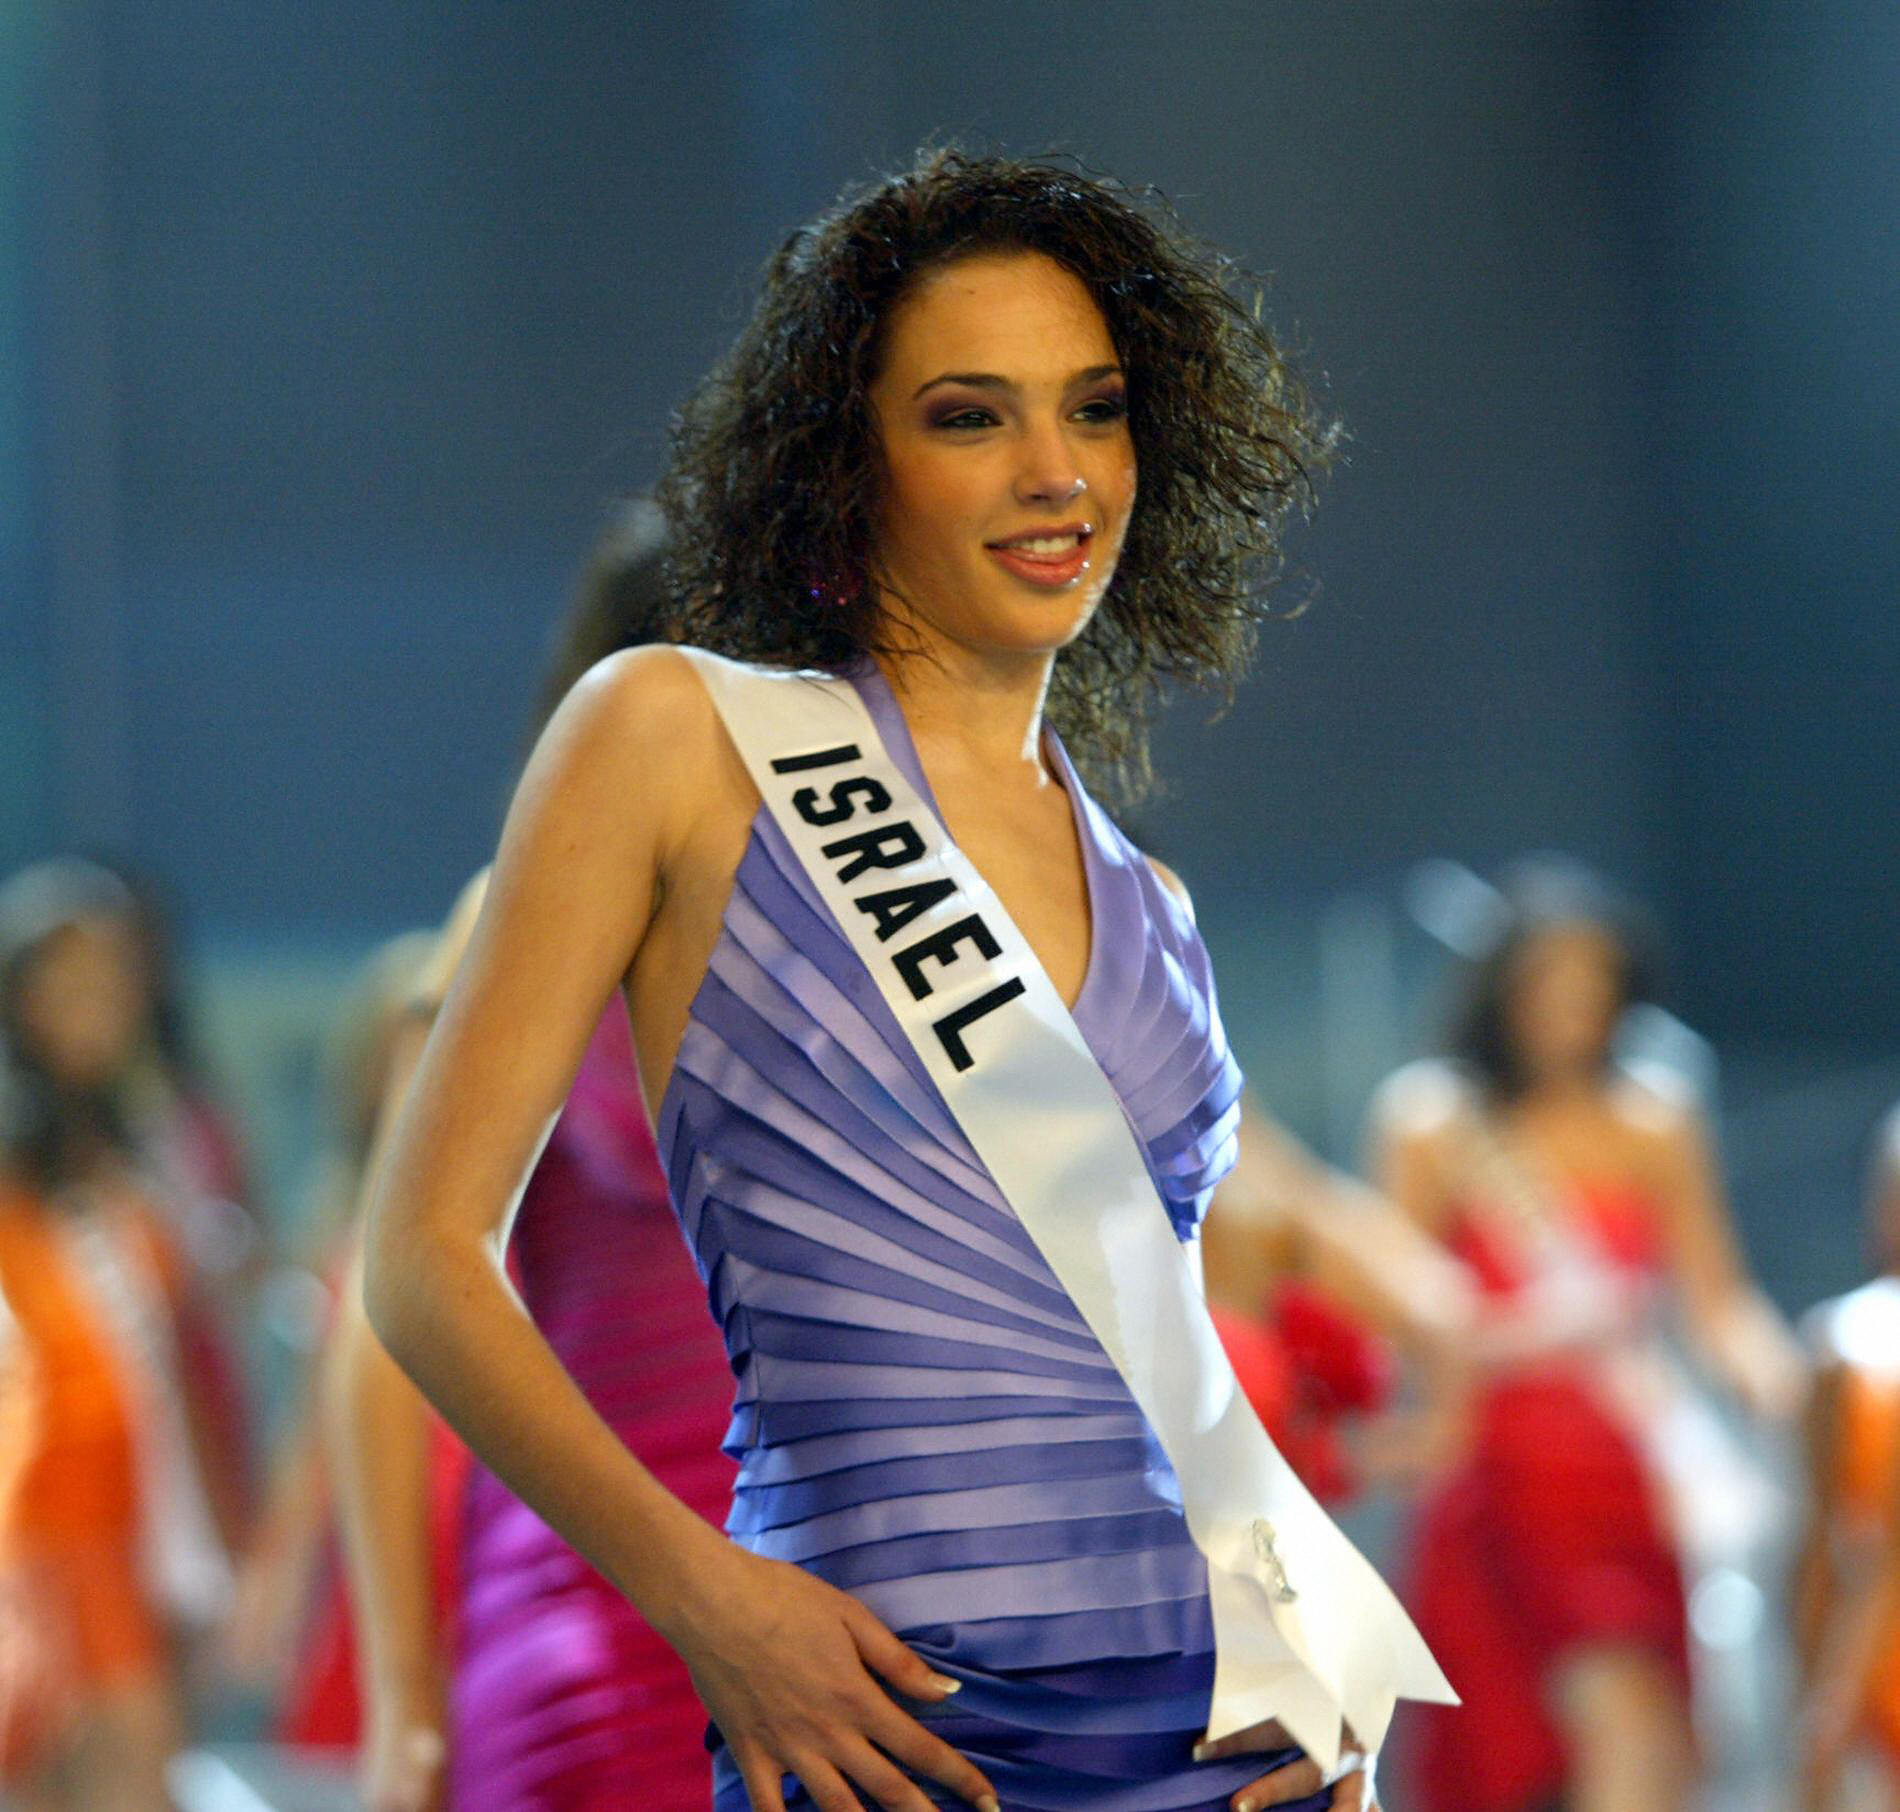 6. She competed for Miss Universe